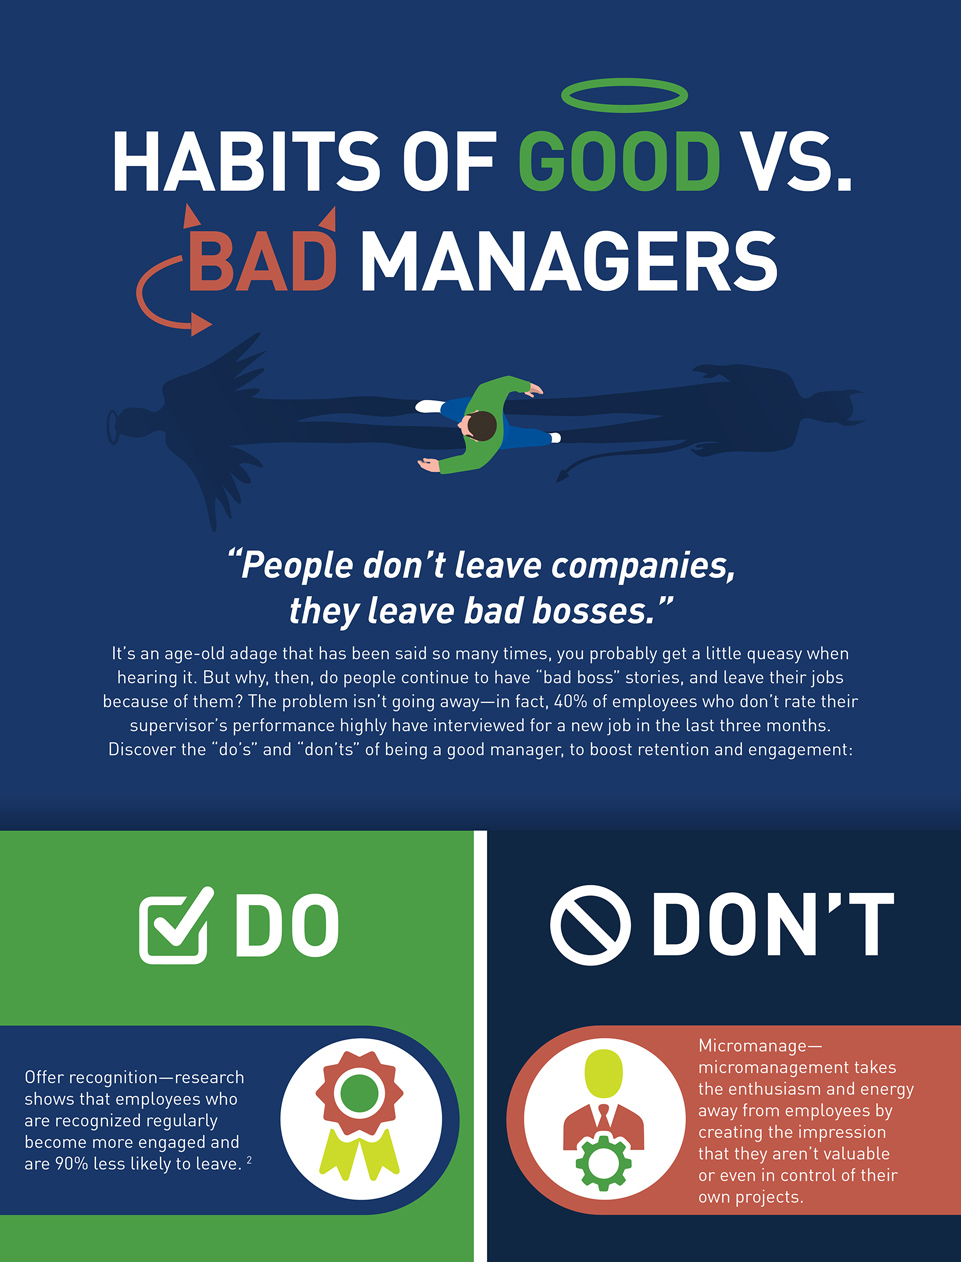 Habits of good and bad managers #2